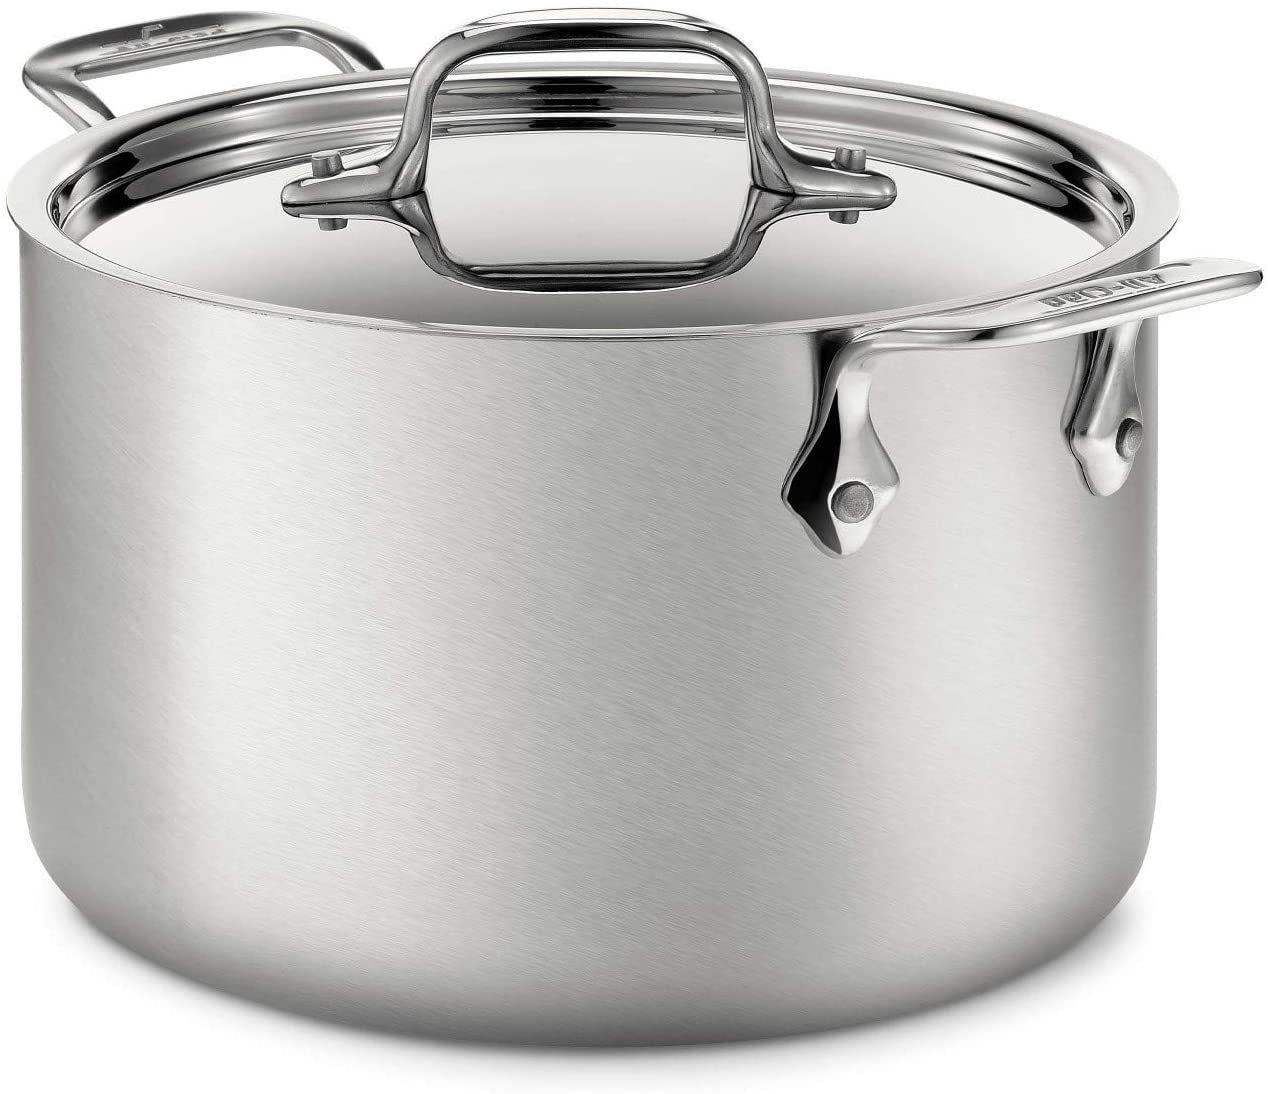 All-Clad D5 Stainless Steel 12-Quart Covered Stockpot